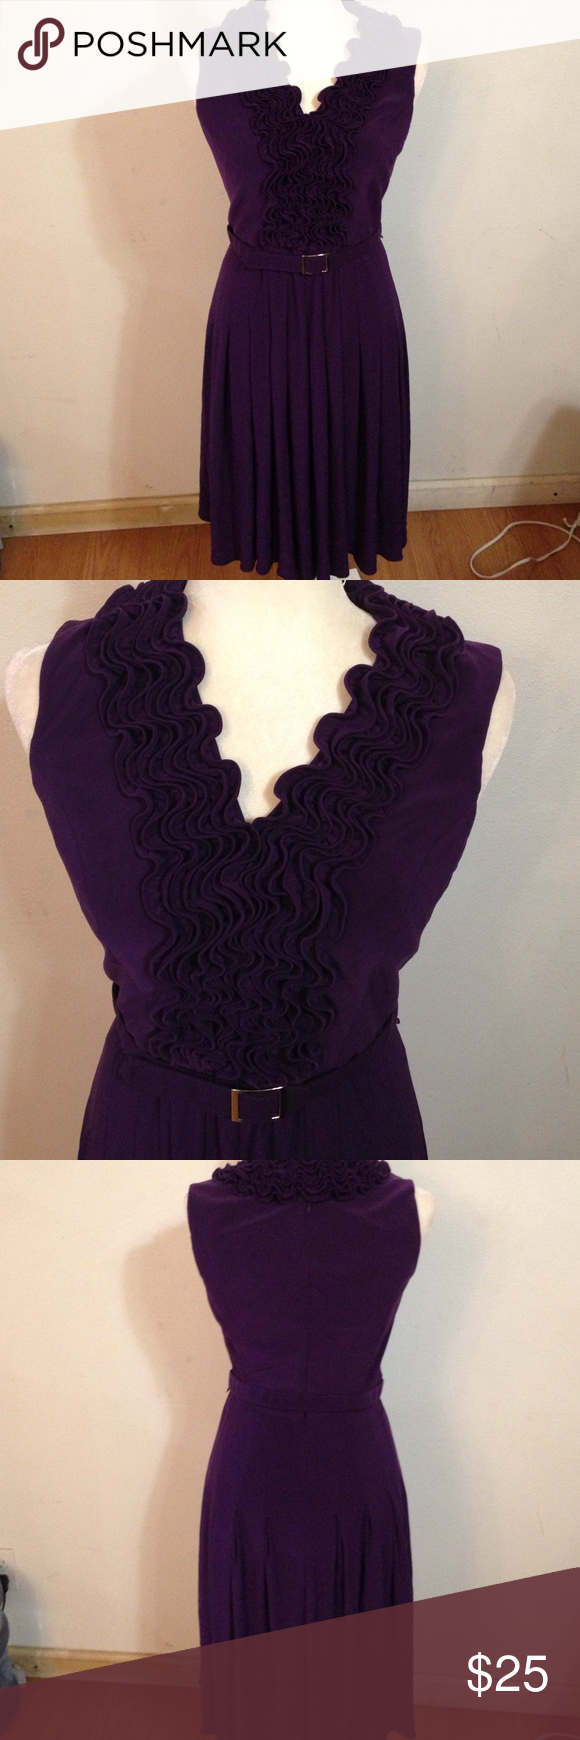 Adriana papell beautiful dress Adriana papell Georgeous purple dress like new excellent condition as is Adrianna Papell Dresses Asymmetrical